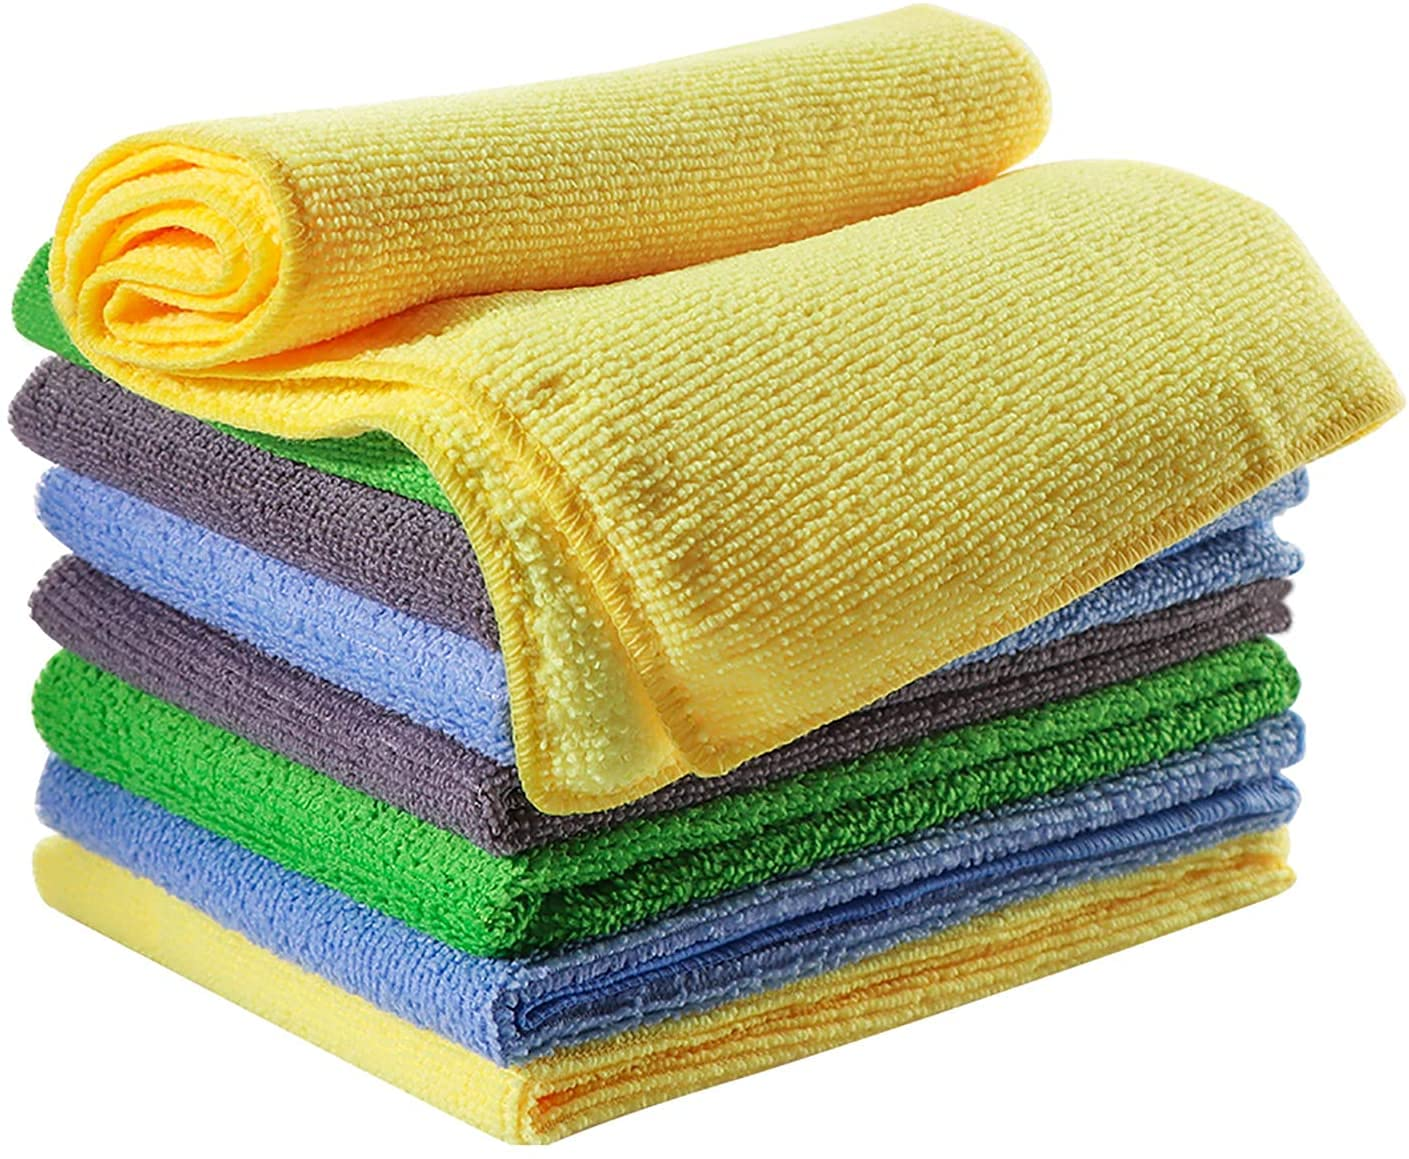 woscher-large-soft-and-quick-drying-car-microfiber-cleaning-cloth-microfiber-cloth-polishing-waxing-auto-detailing-towel-cloth-assorted-40-x-40-cm-pack-of-4